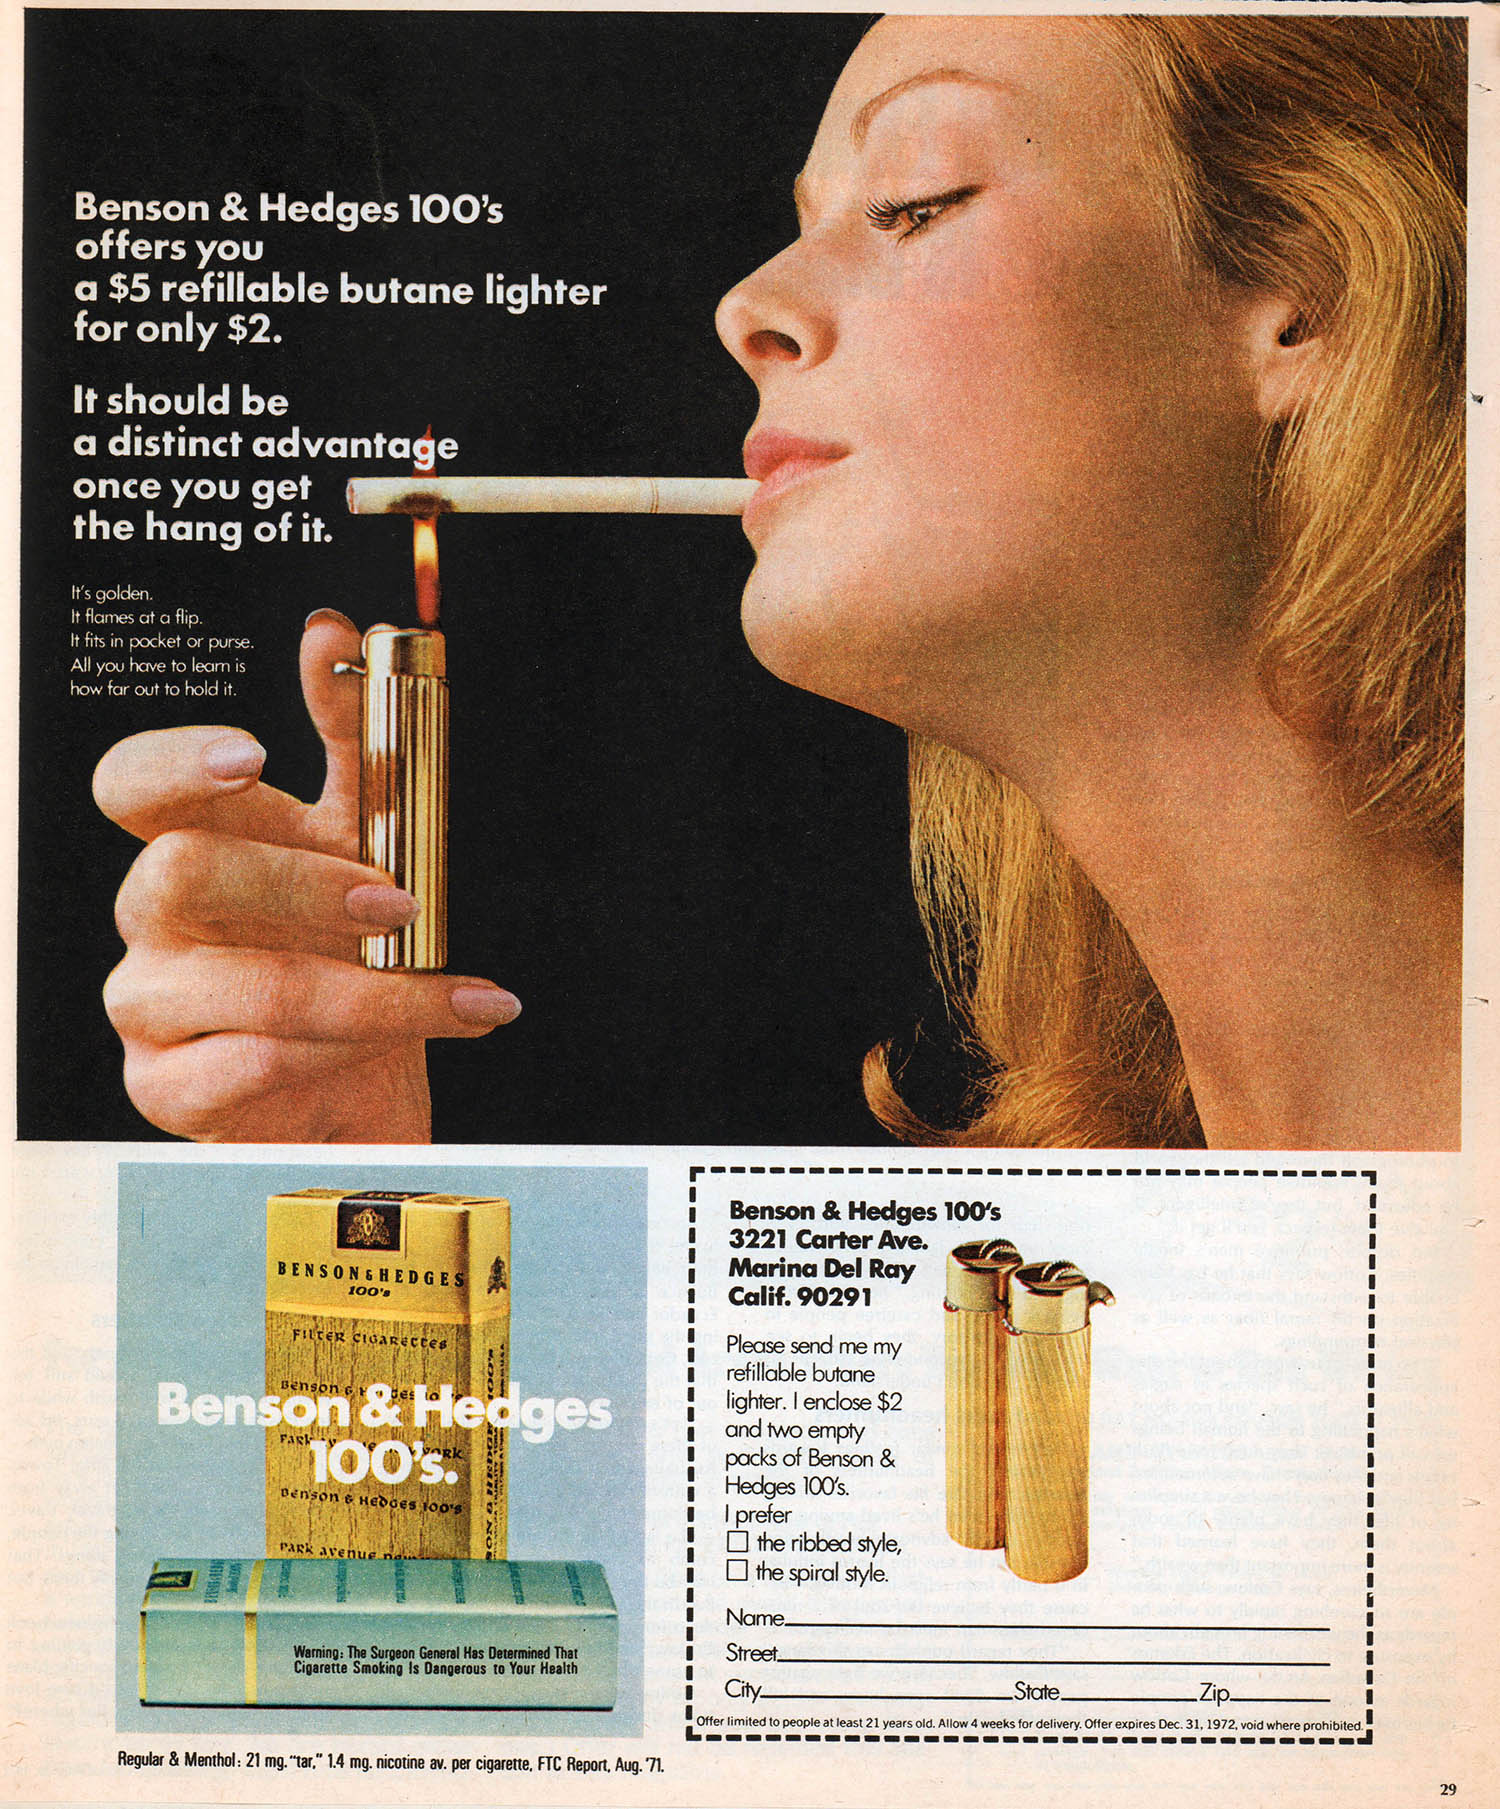 benson and hedges cigarette advertisement